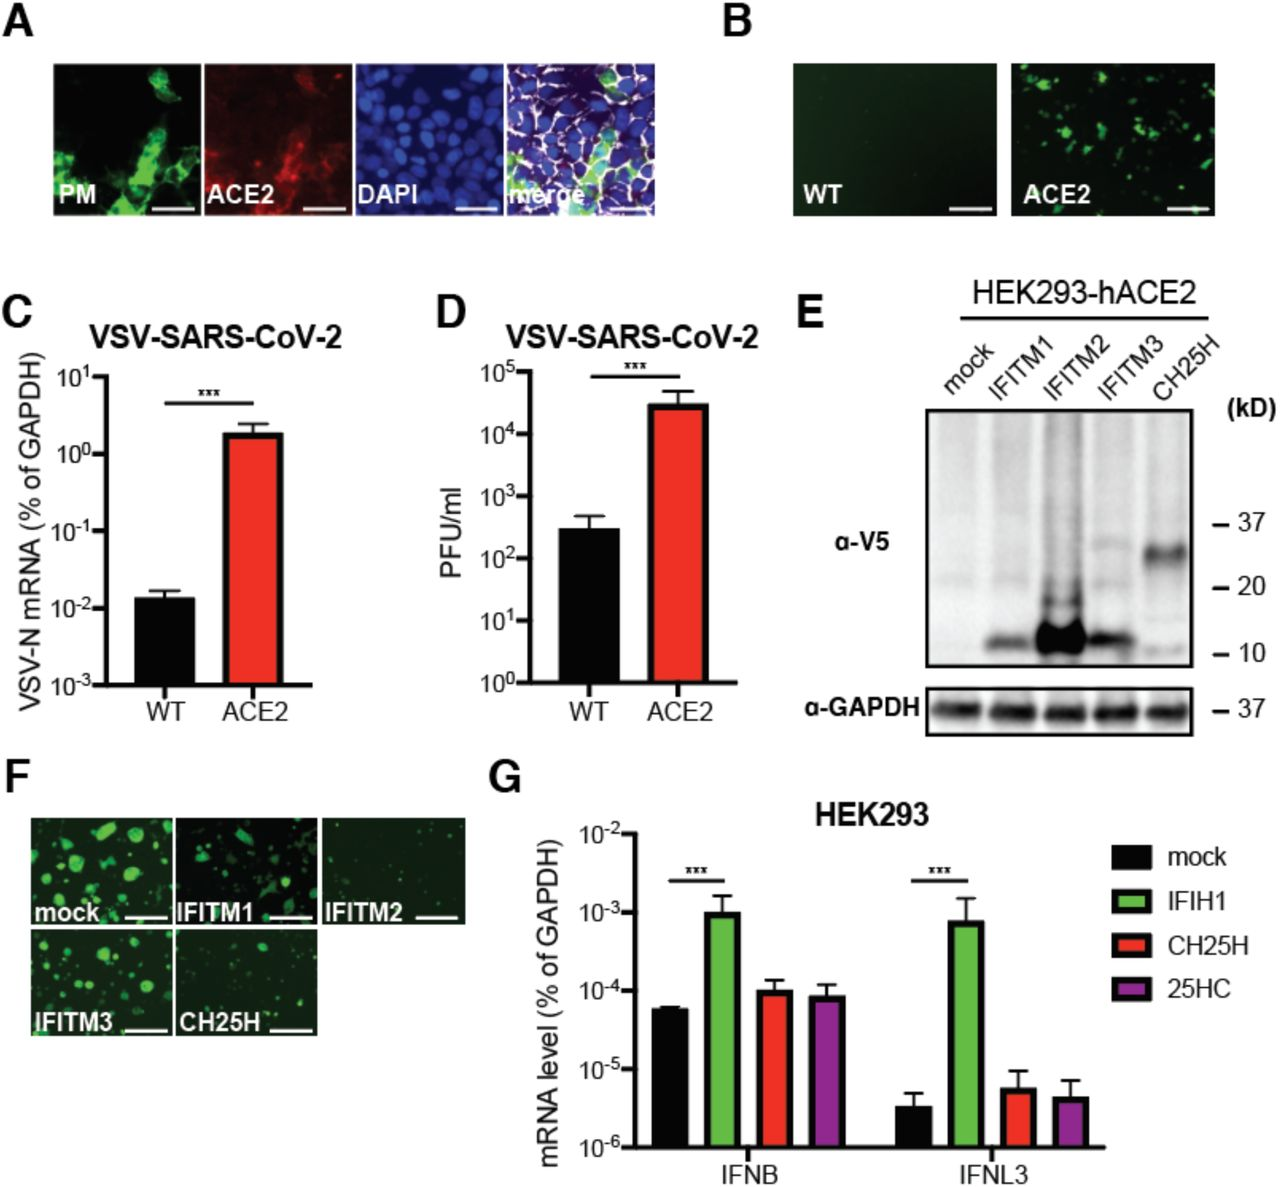 CH25H and 25HC block SARS-CoV-2 S mediated fusion. (A) HEK293-hACE2-TMPRSS2 cells were infected with wild-type VSV, VSV-SARS-CoV or VSV-SARS-CoV-2 (MOI=10) for 6 hr. Cells were harvested and measured for GFP percentage and intensity by flow cytometry. (B) HEK293-hACE2-TMPRSS2 cells expressing GFP and indicated ISGs or treated with 25HC (10 µM) were mixed at 1:1 ratio and co-cultured with HEK293 cells expressing SARS-CoV-2 S and TdTomato for 24 hr. Note the formation of cell-cell fusion (yellow), highlighted by black arrows. Scale bar: 200 µm. (C) HEK293 cells were co-transfected with GFP, VSV G, or reovirus FAST p10, with or without 25HC (10 µM) for 24 hr. The red arrows highlight the syncytia formation. Scale bar: 200 µm. For all figures, experiments were repeated at least three times with similar results. Data are represented as mean ± SEM.